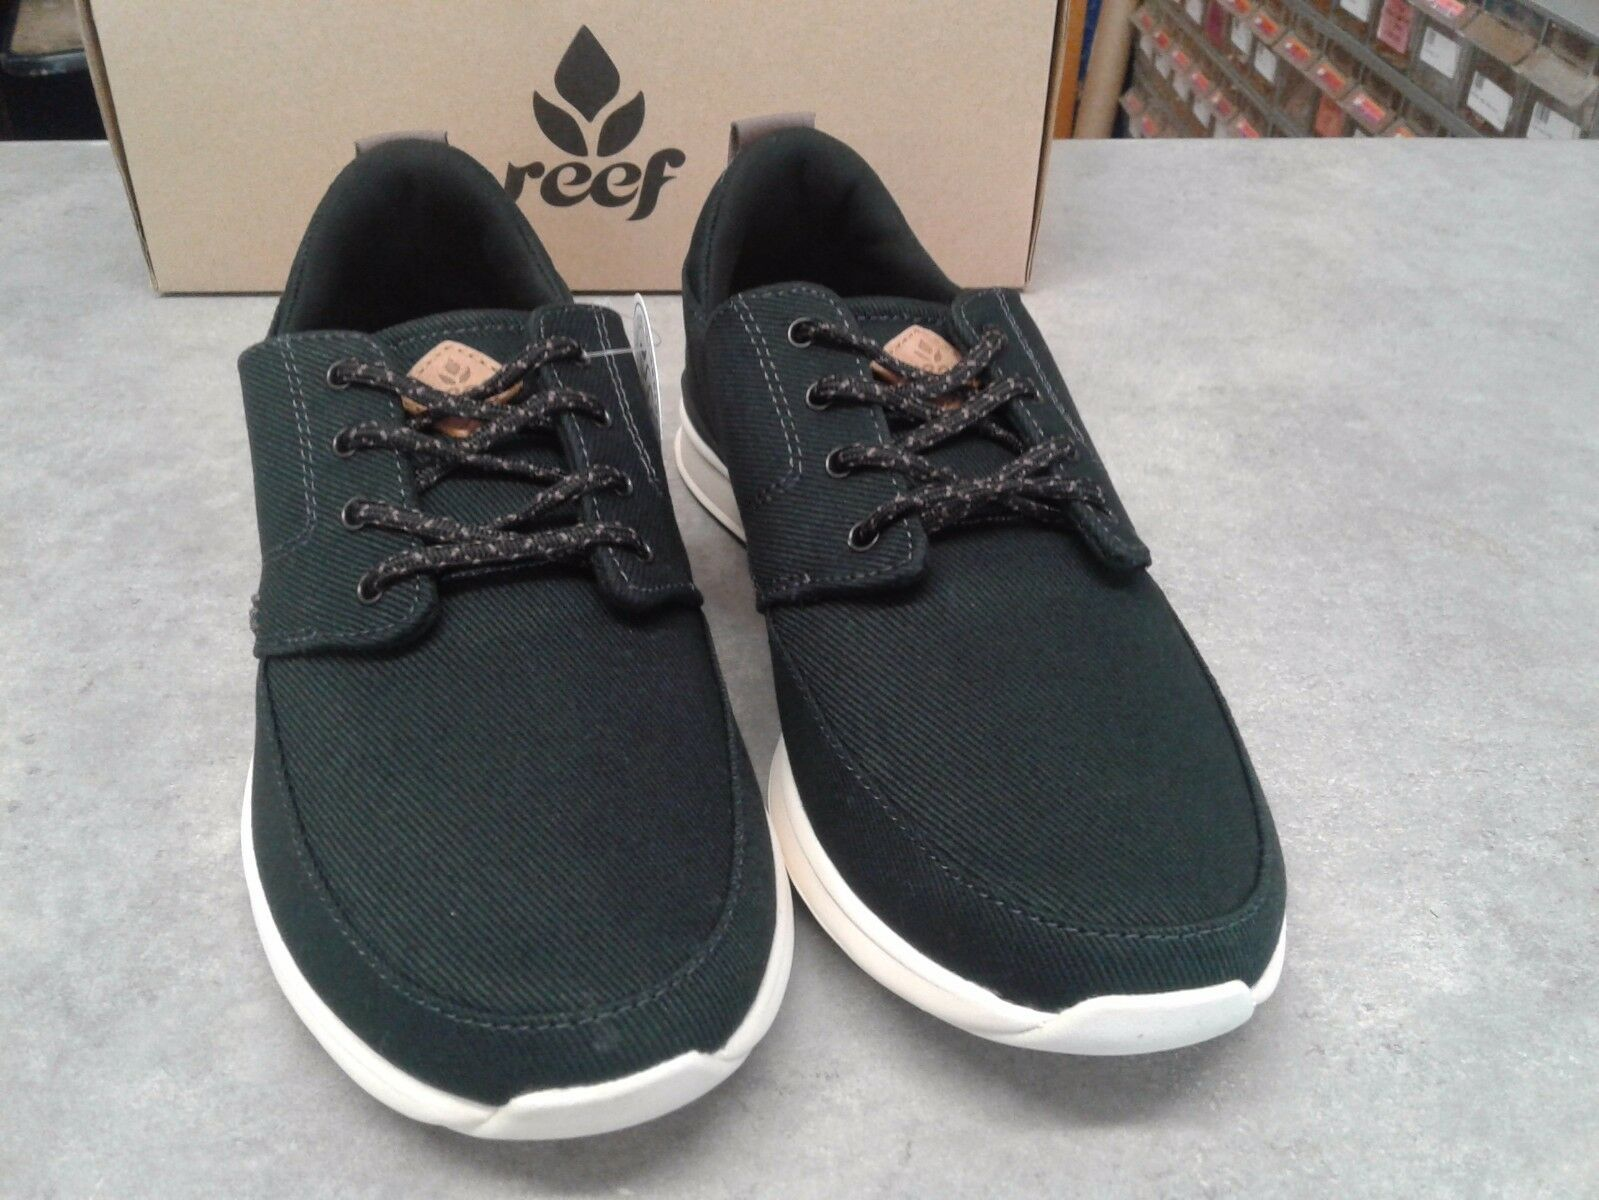 Reef Women's Rover Low size 6 Black/Charcoal